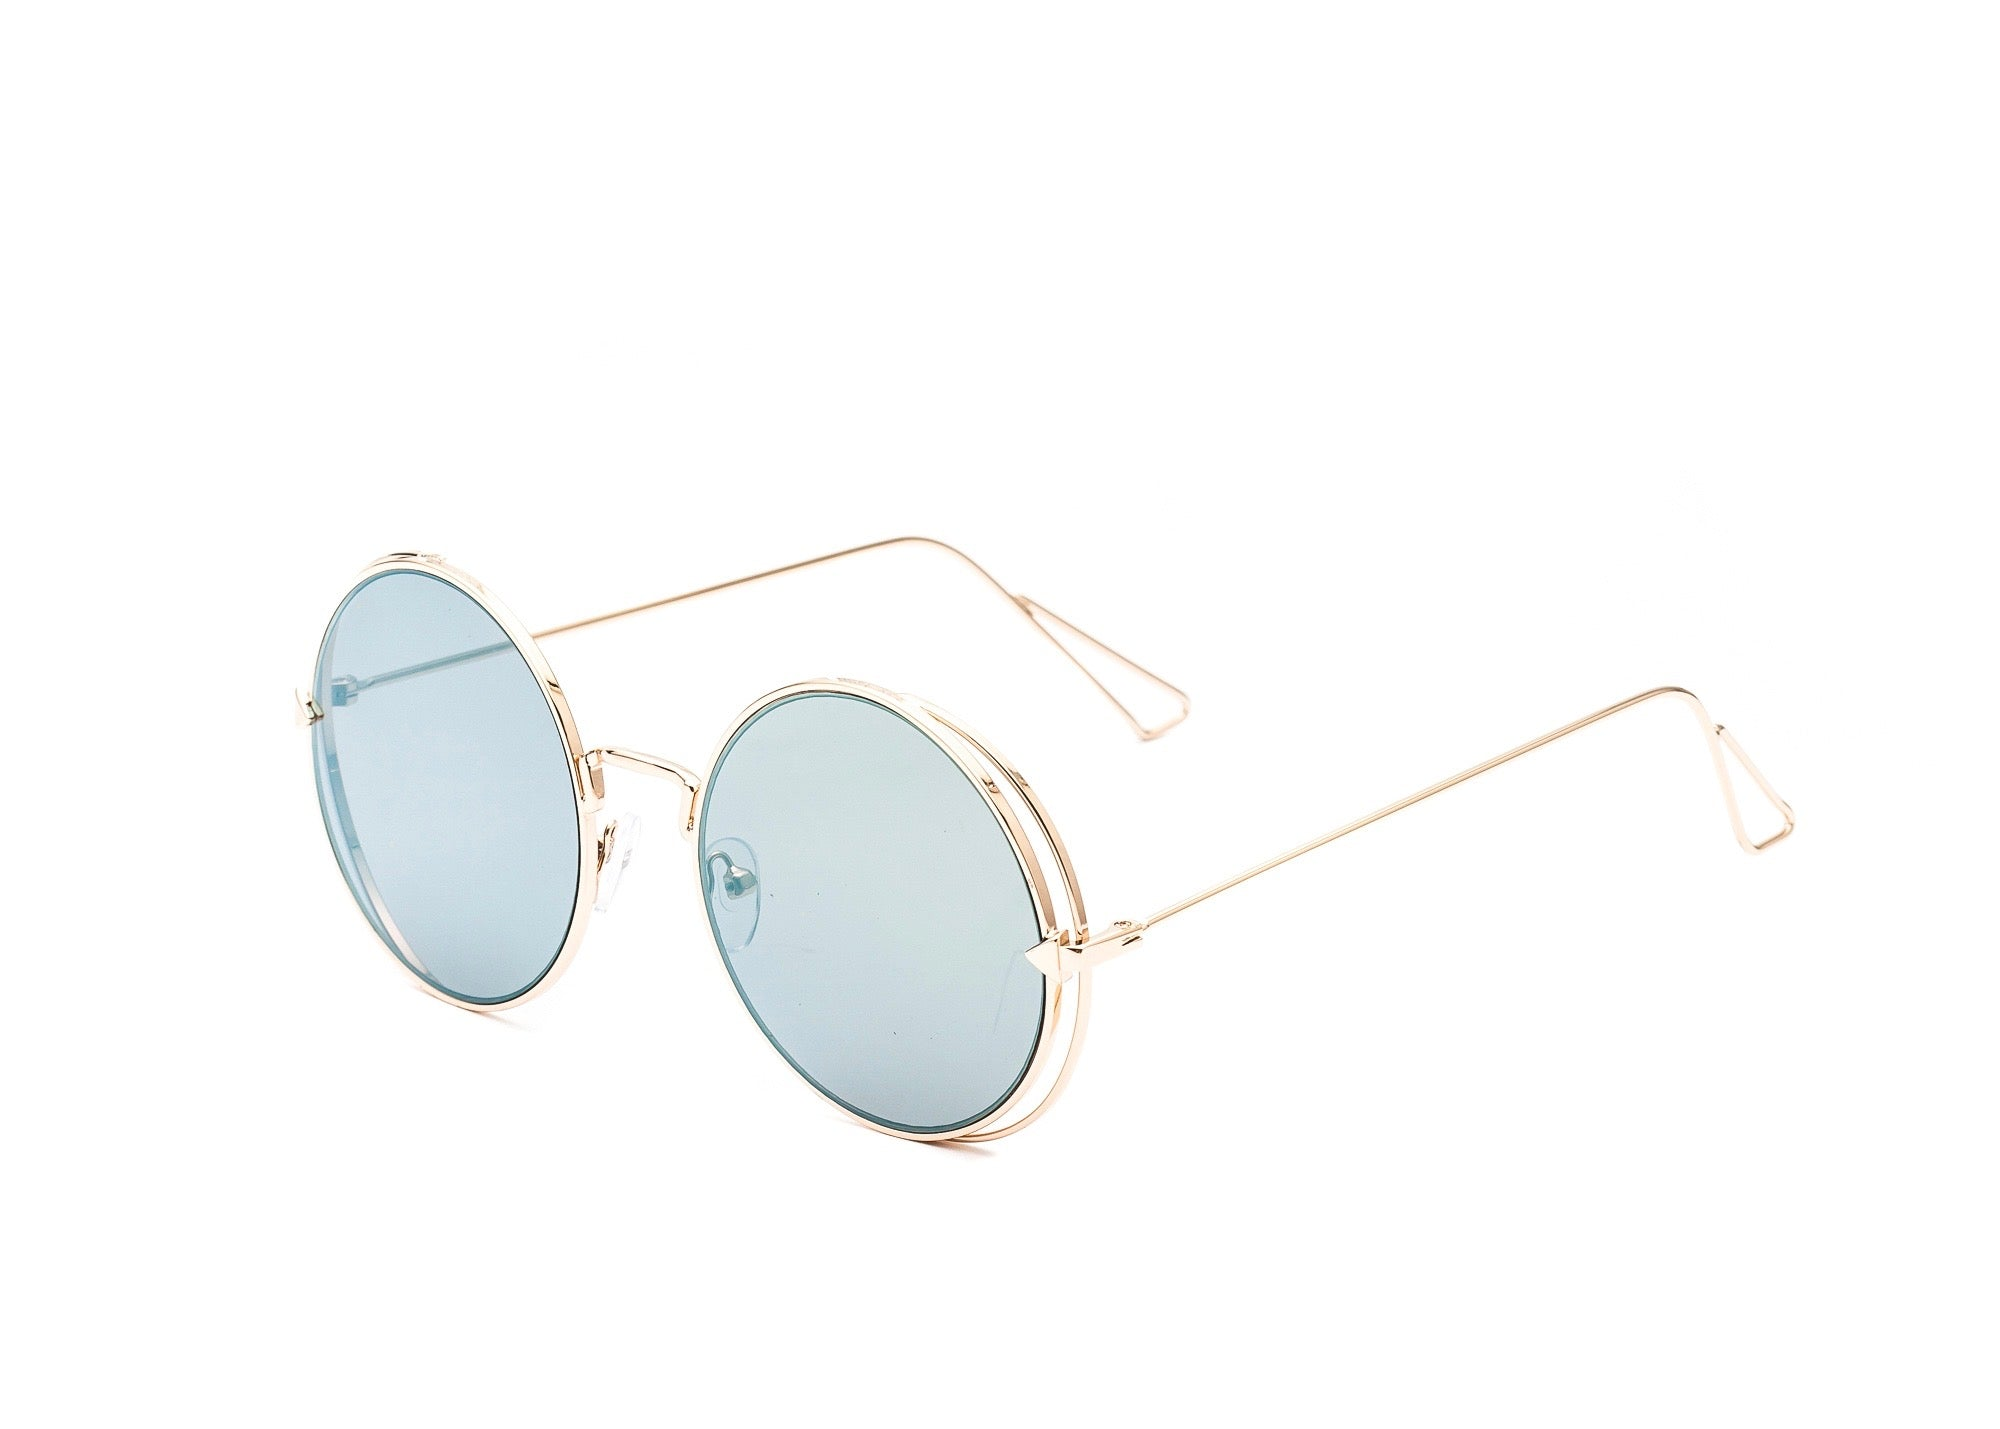 GOLD METAL ROUND SUNNIES